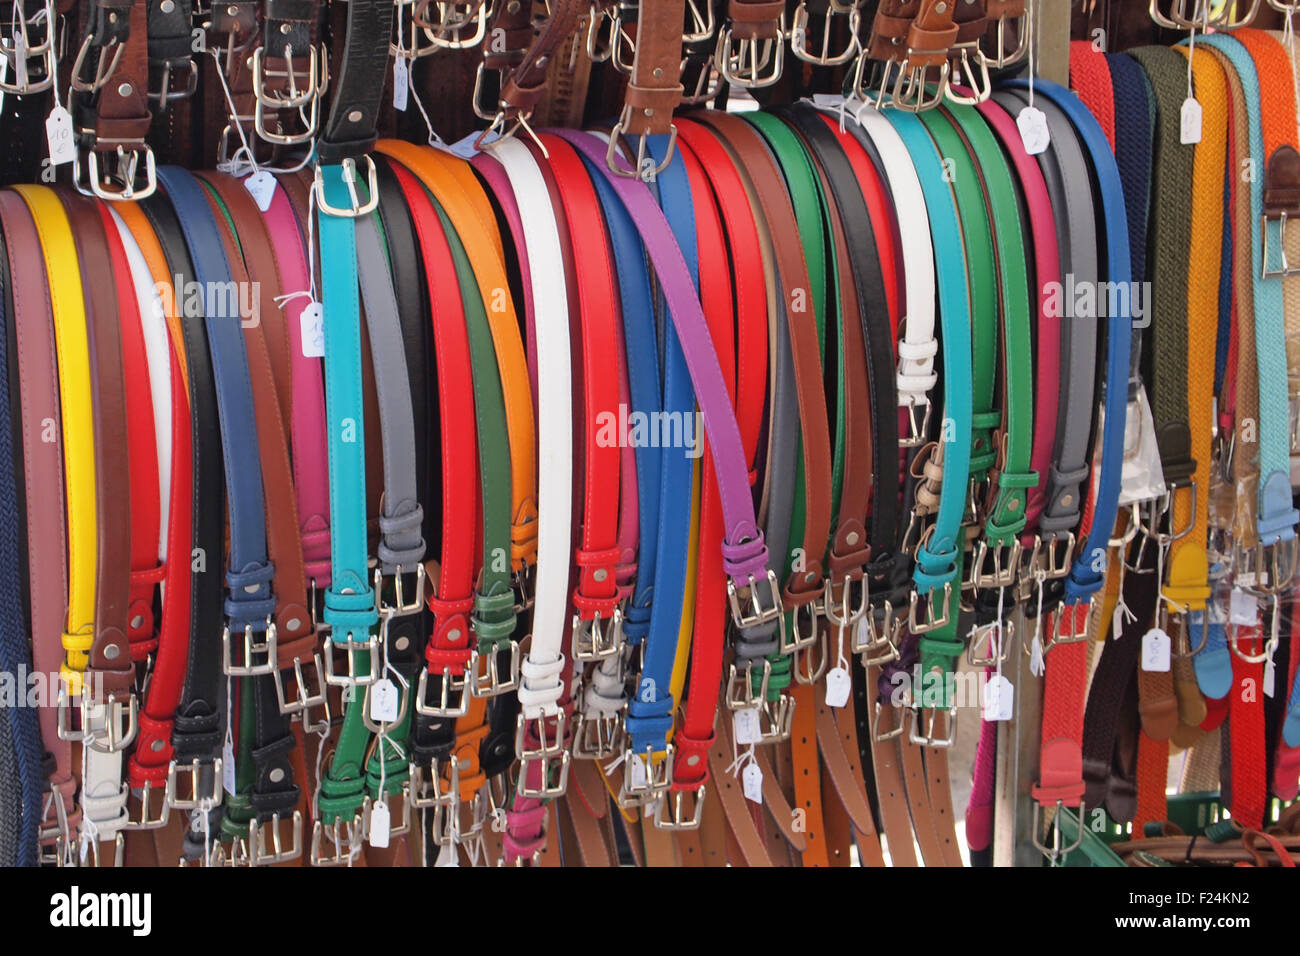 Belts on sale cheaply in a market stall in Minorca - Stock Image